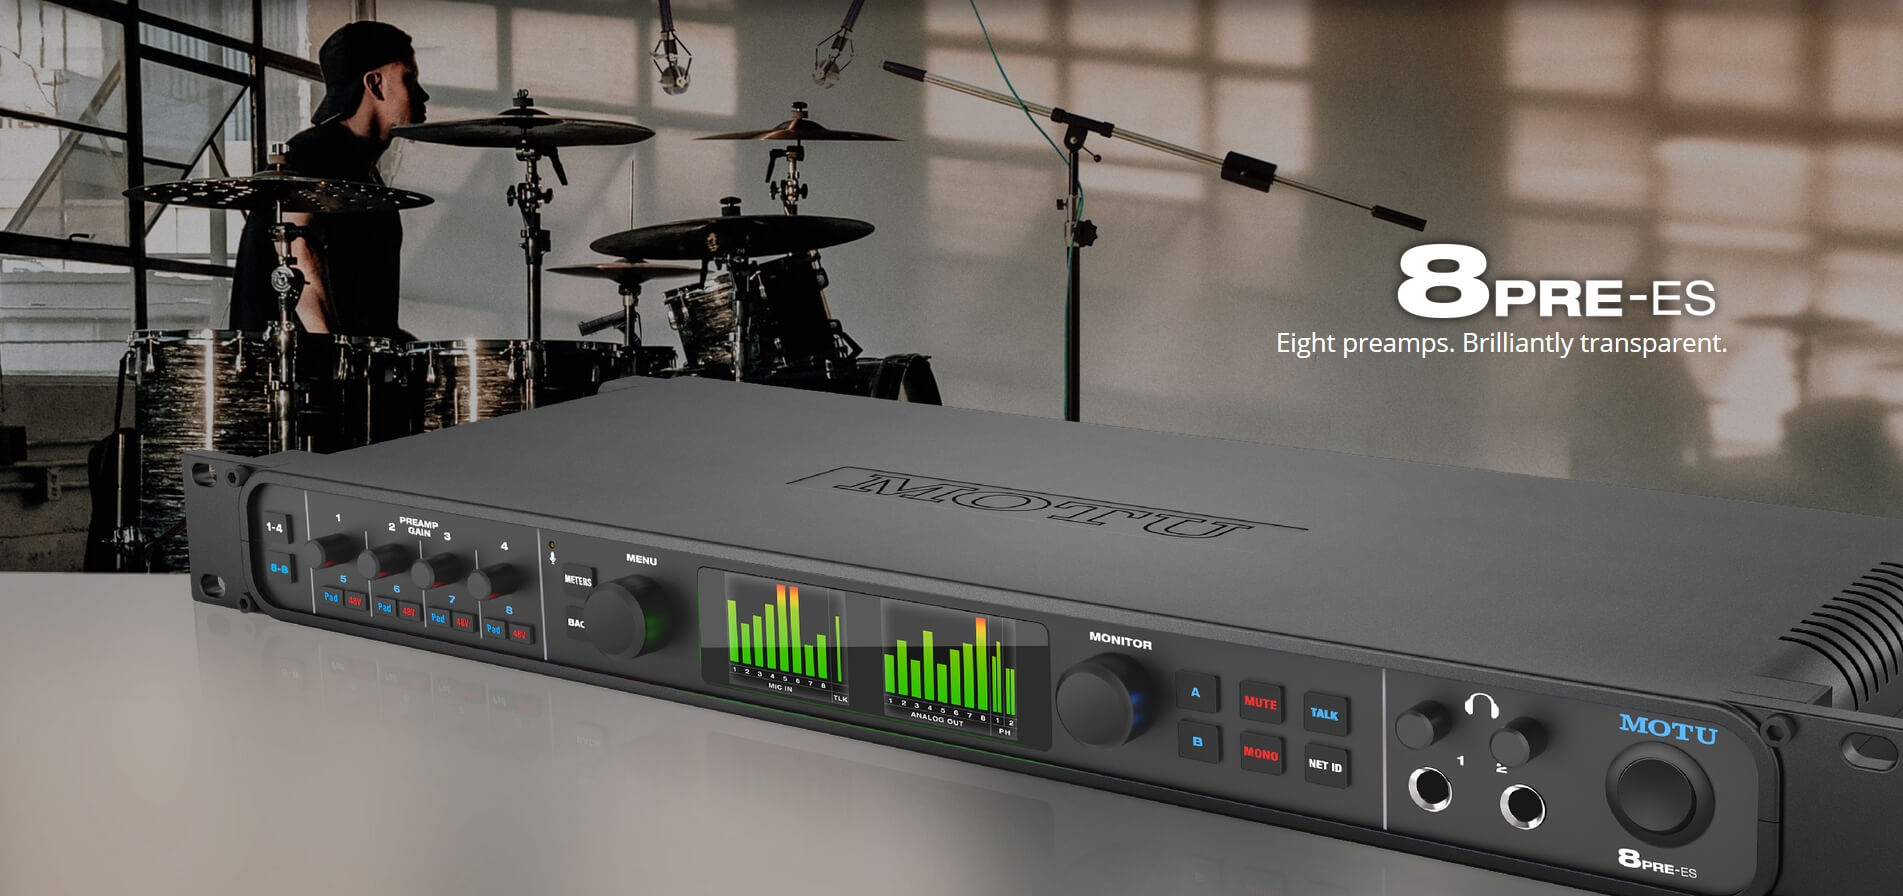 MOTU Ships 8pre Es Audio Interface With 8 Mic Inputs